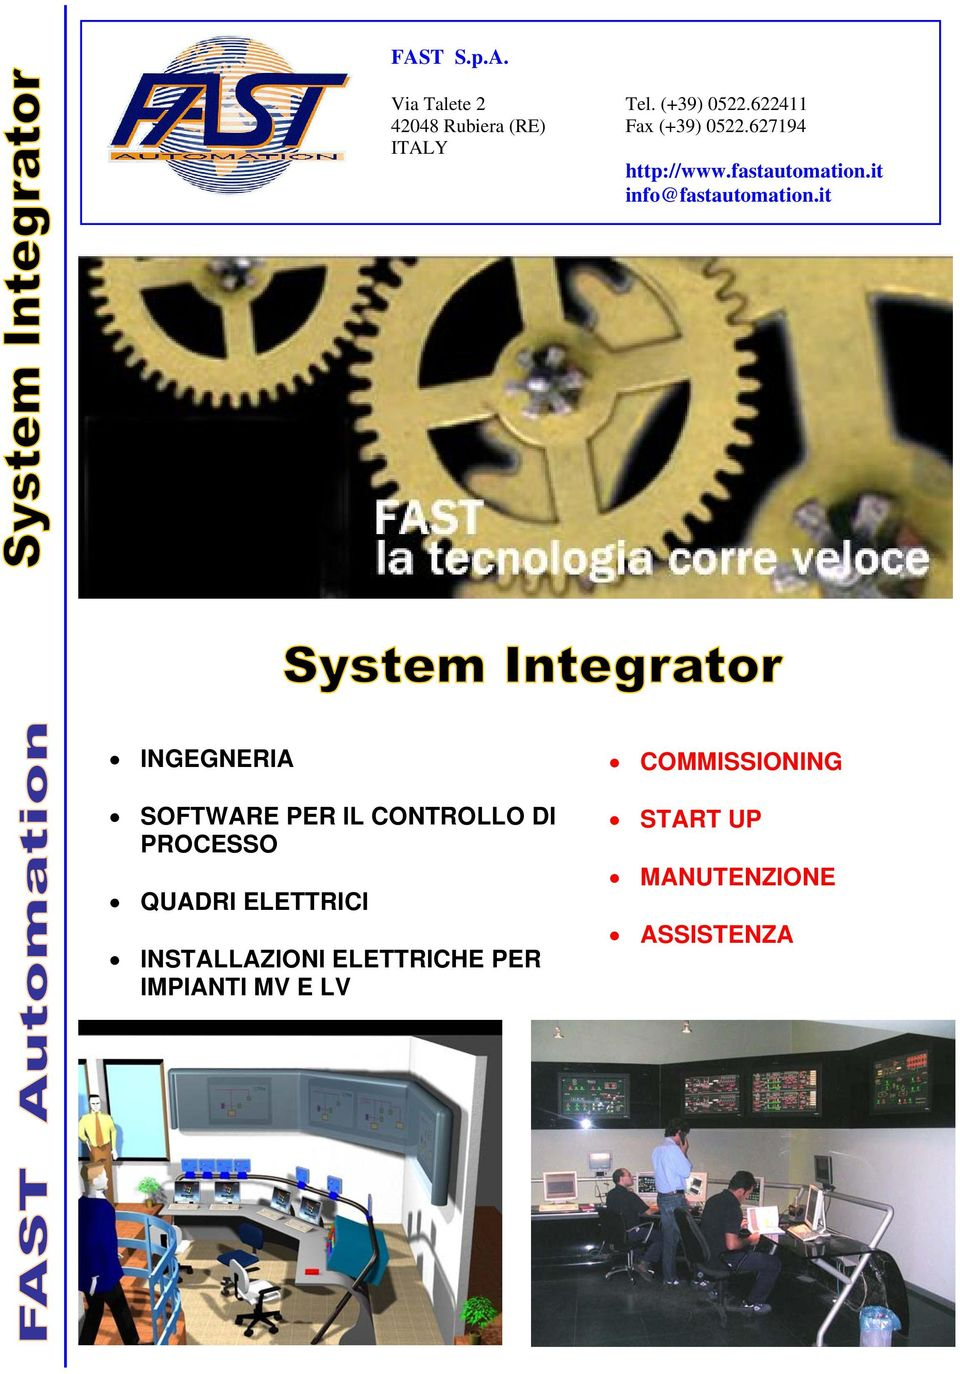 fastautomation.it info@fastautomation.